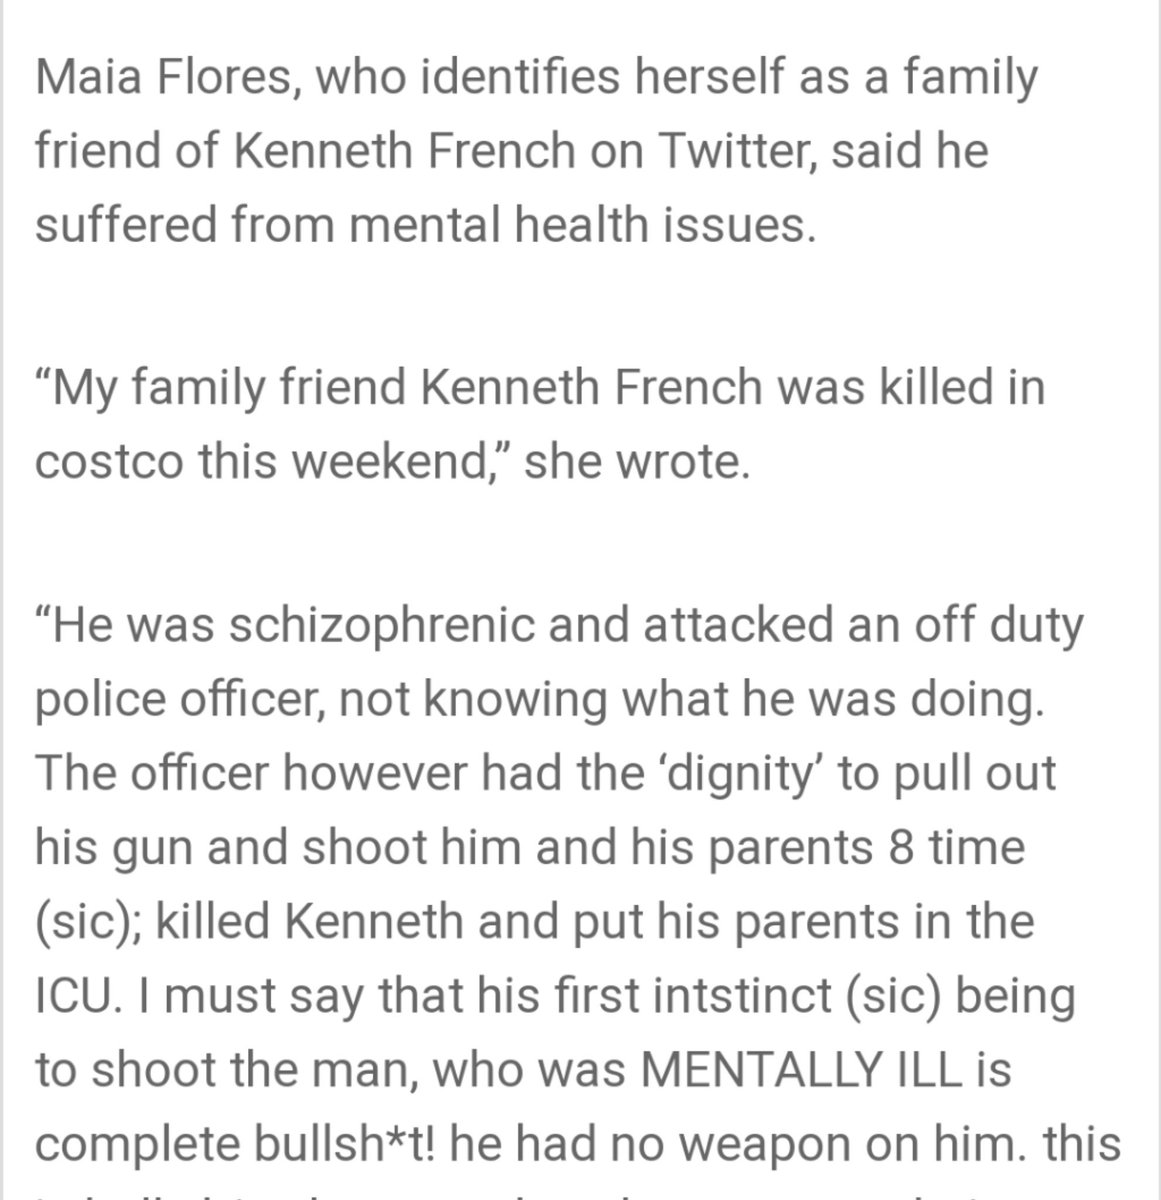 2/2 Kenneth was killed and his parents are in critical condition. The off duty police officer who shot them sustained only minor injuries. This is heartbreaking. A family is broken. Video of the incident must be released with eyewitness statements.  #Costo #Corona #GunViolence<br>http://pic.twitter.com/hyPtFYsG2u